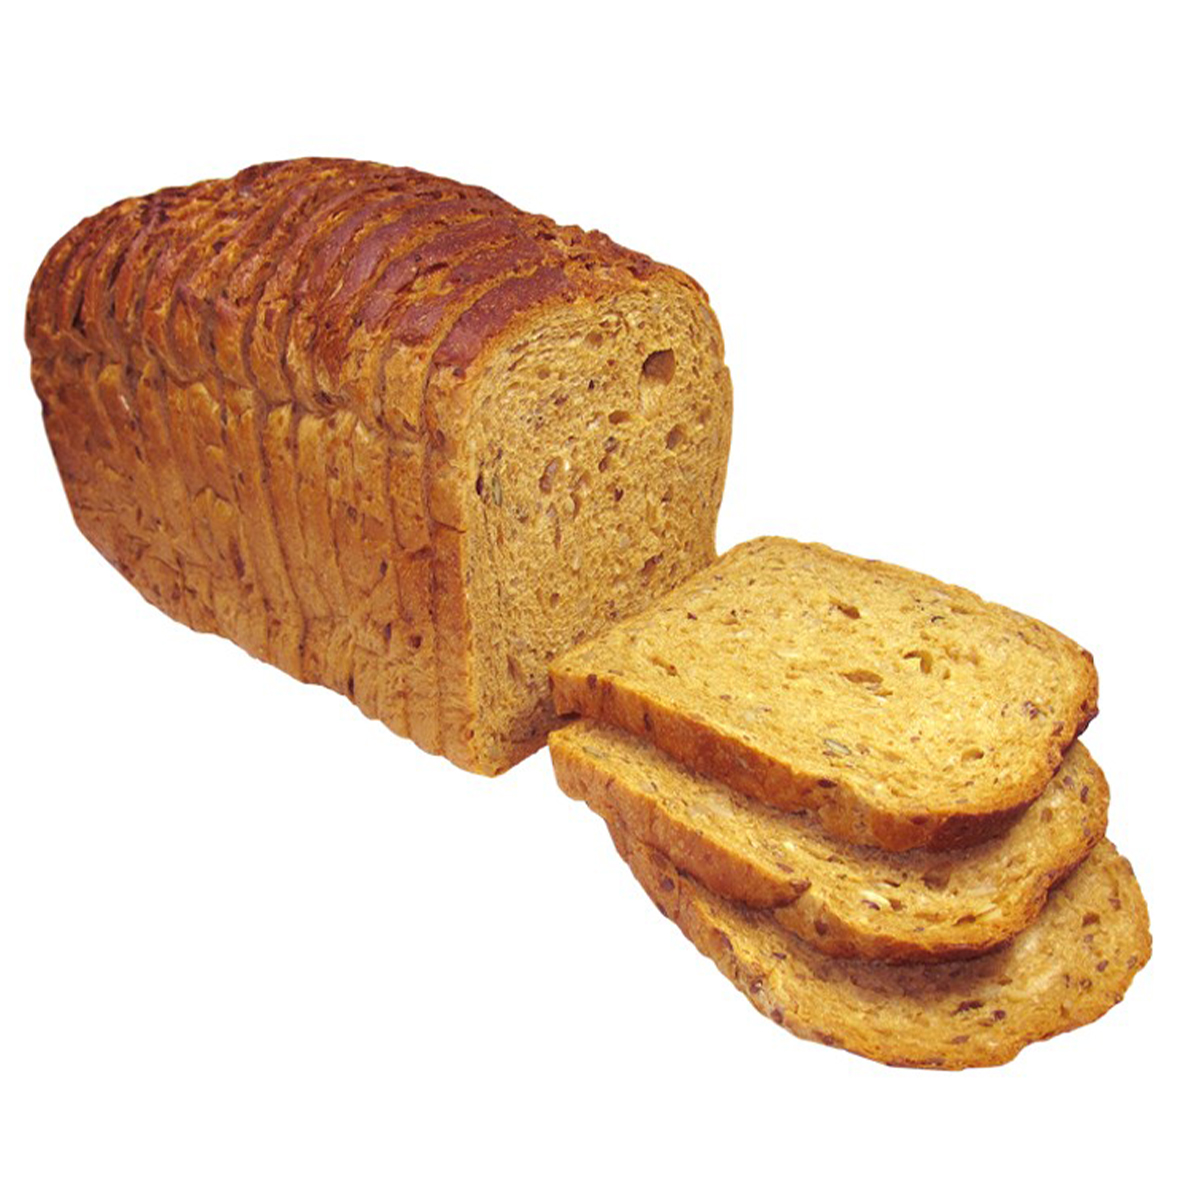 738 Large Multiseed GI Bread